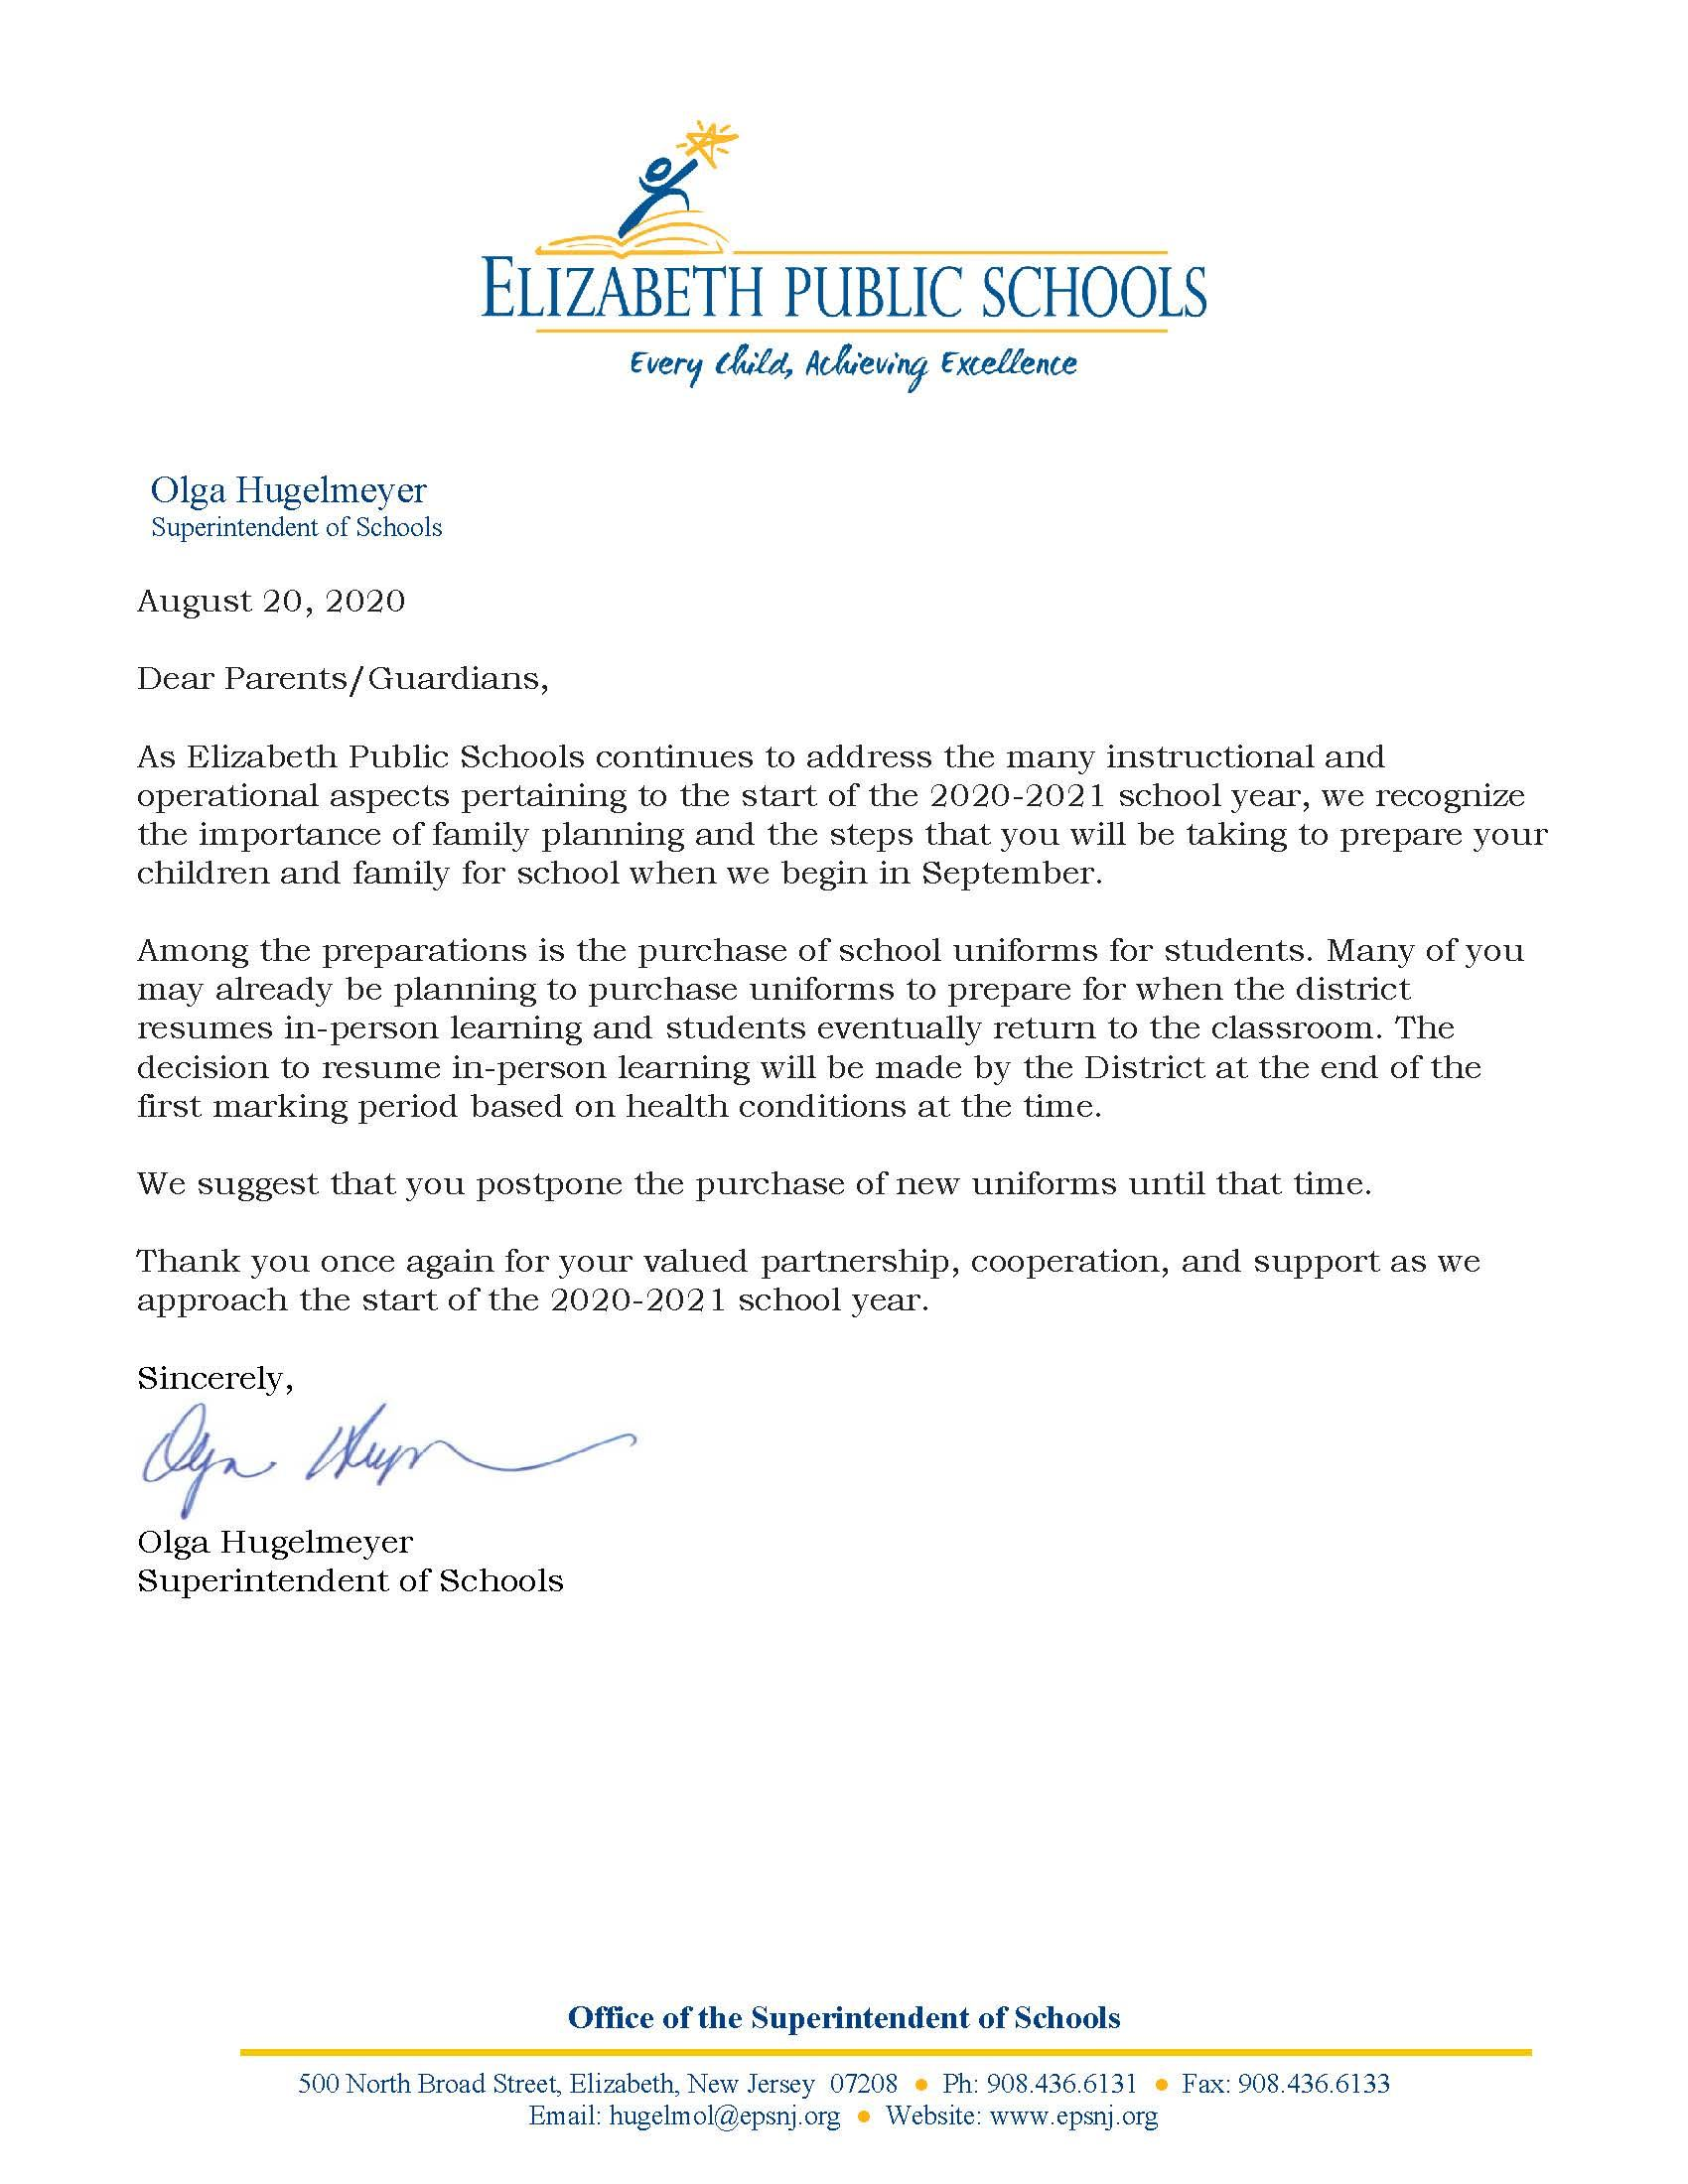 8-20-20 Letter to Parents - Uniform Purchase